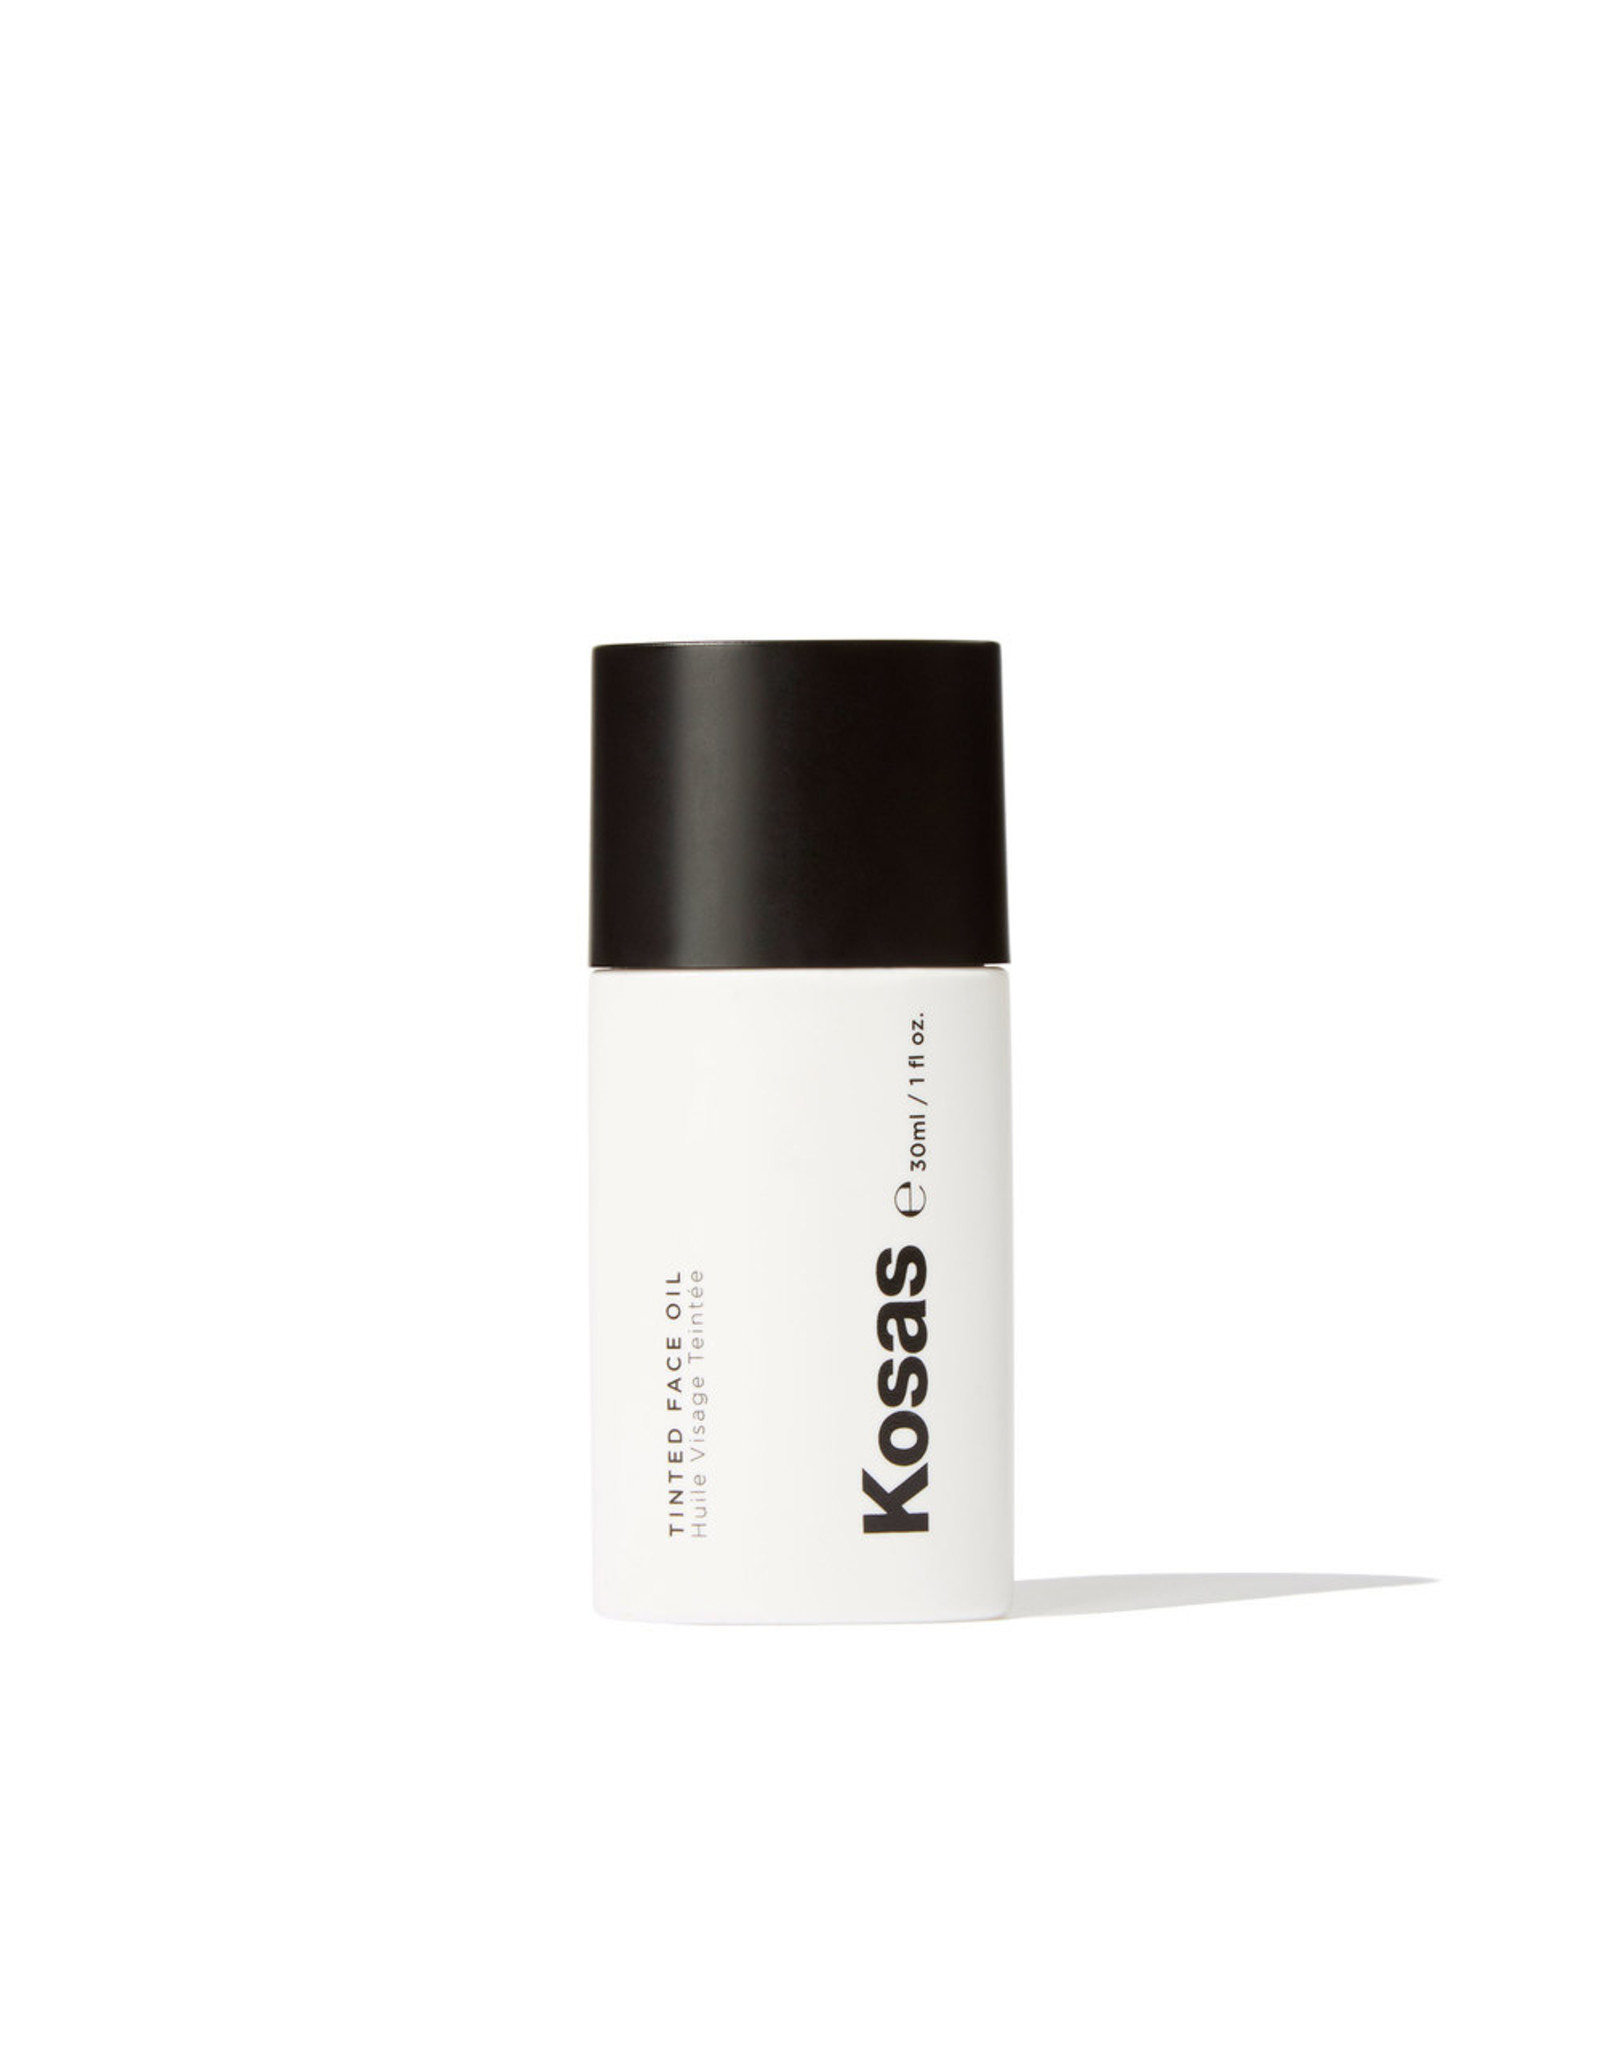 Kosas Kosas Tinted Face Oil (Color: 07)